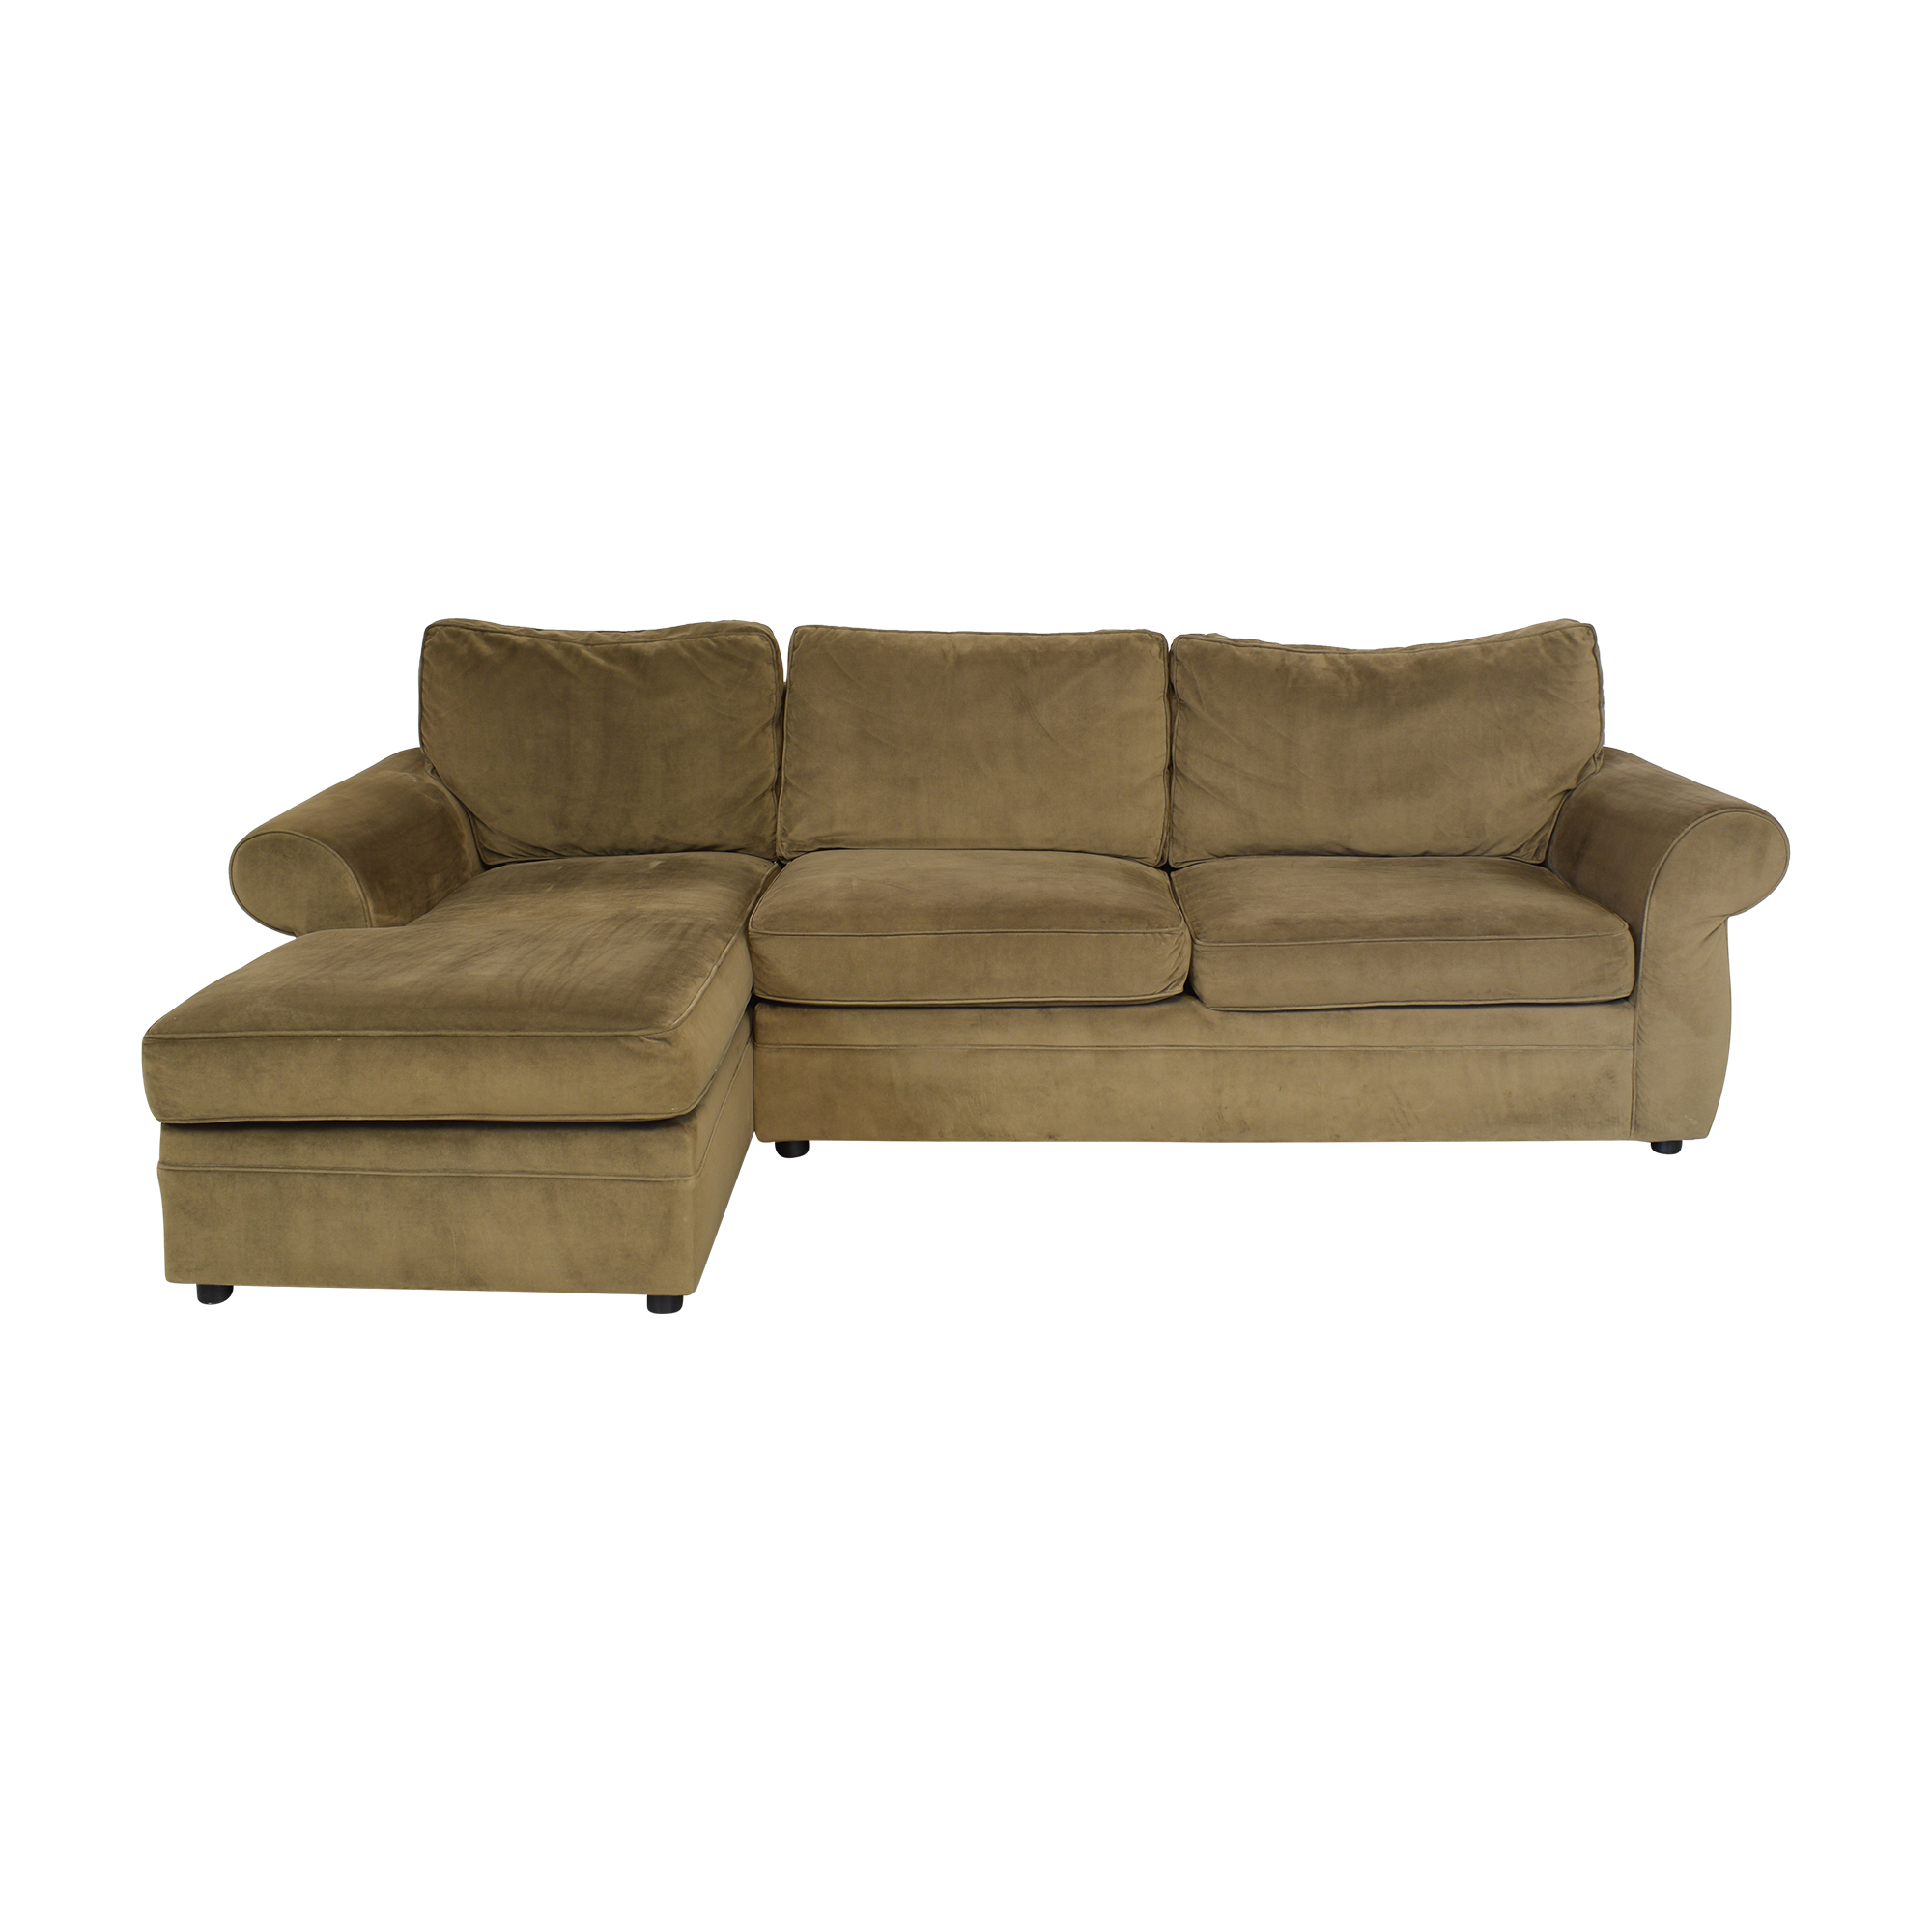 Pottery Barn Pottery Barn Roll Arm Sectional Sofa with Chaise nj